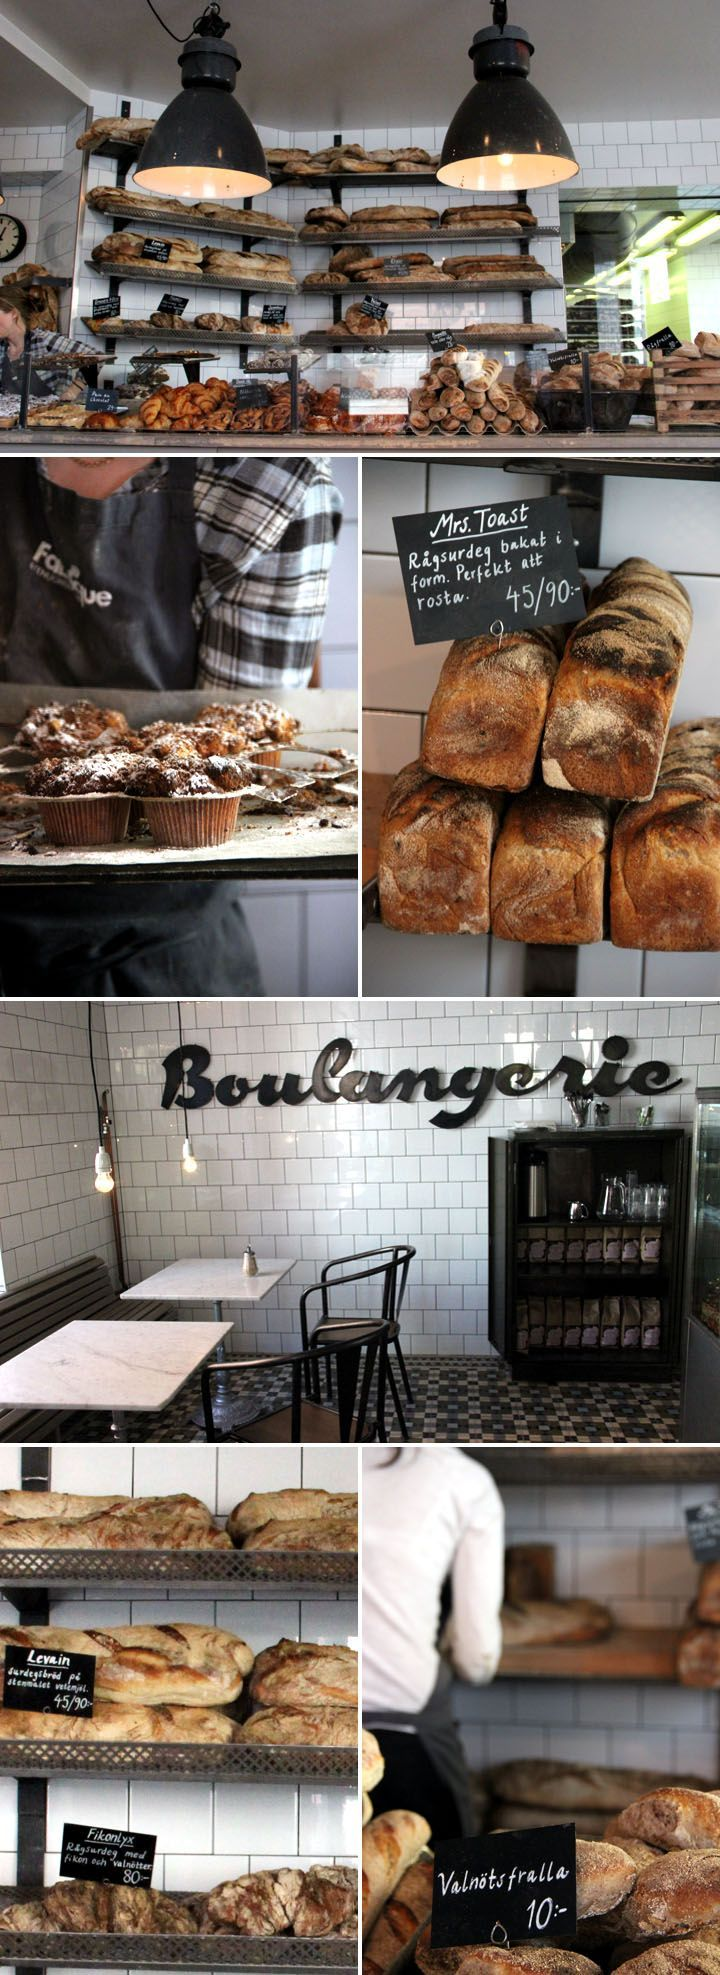 boulangerie || I'm wishful to have my own little bakery someday, along side my Rosey Tea Room X lynne